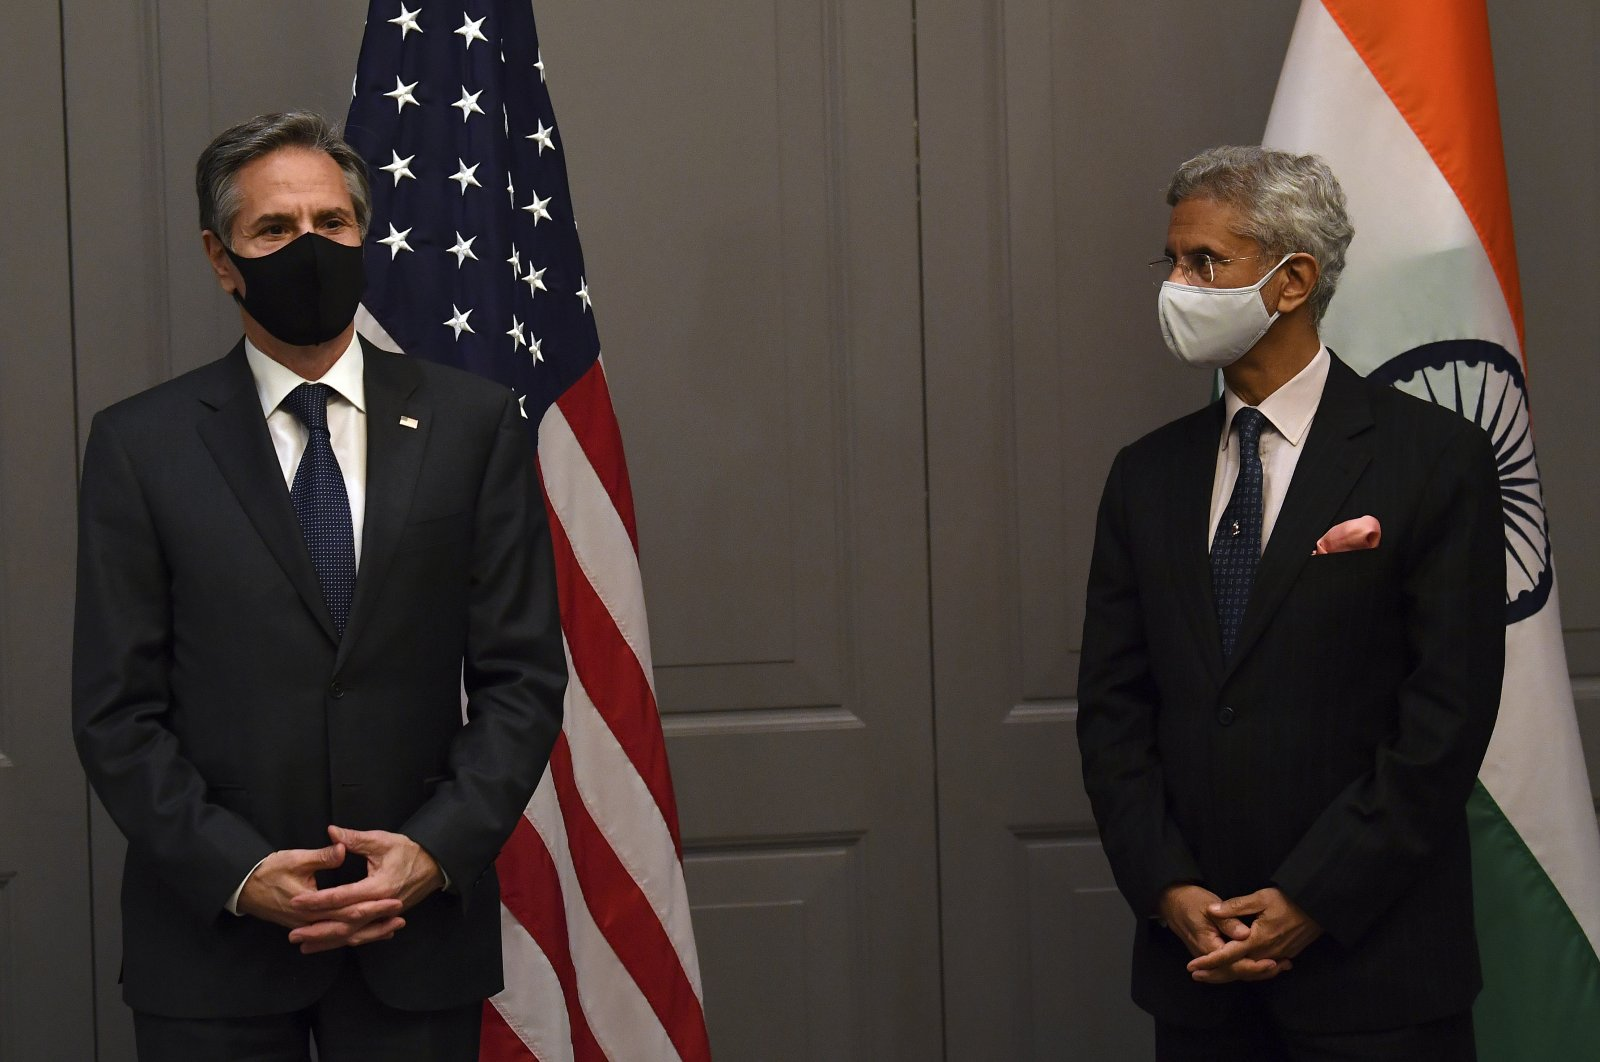 India's Foreign Minister Subrahmanyam Jaishankar (R) attends a press conference with U.S. Secretary of State Antony Blinken following a bilateral meeting in London, U.K., May 3, 2021. (AP Photo)